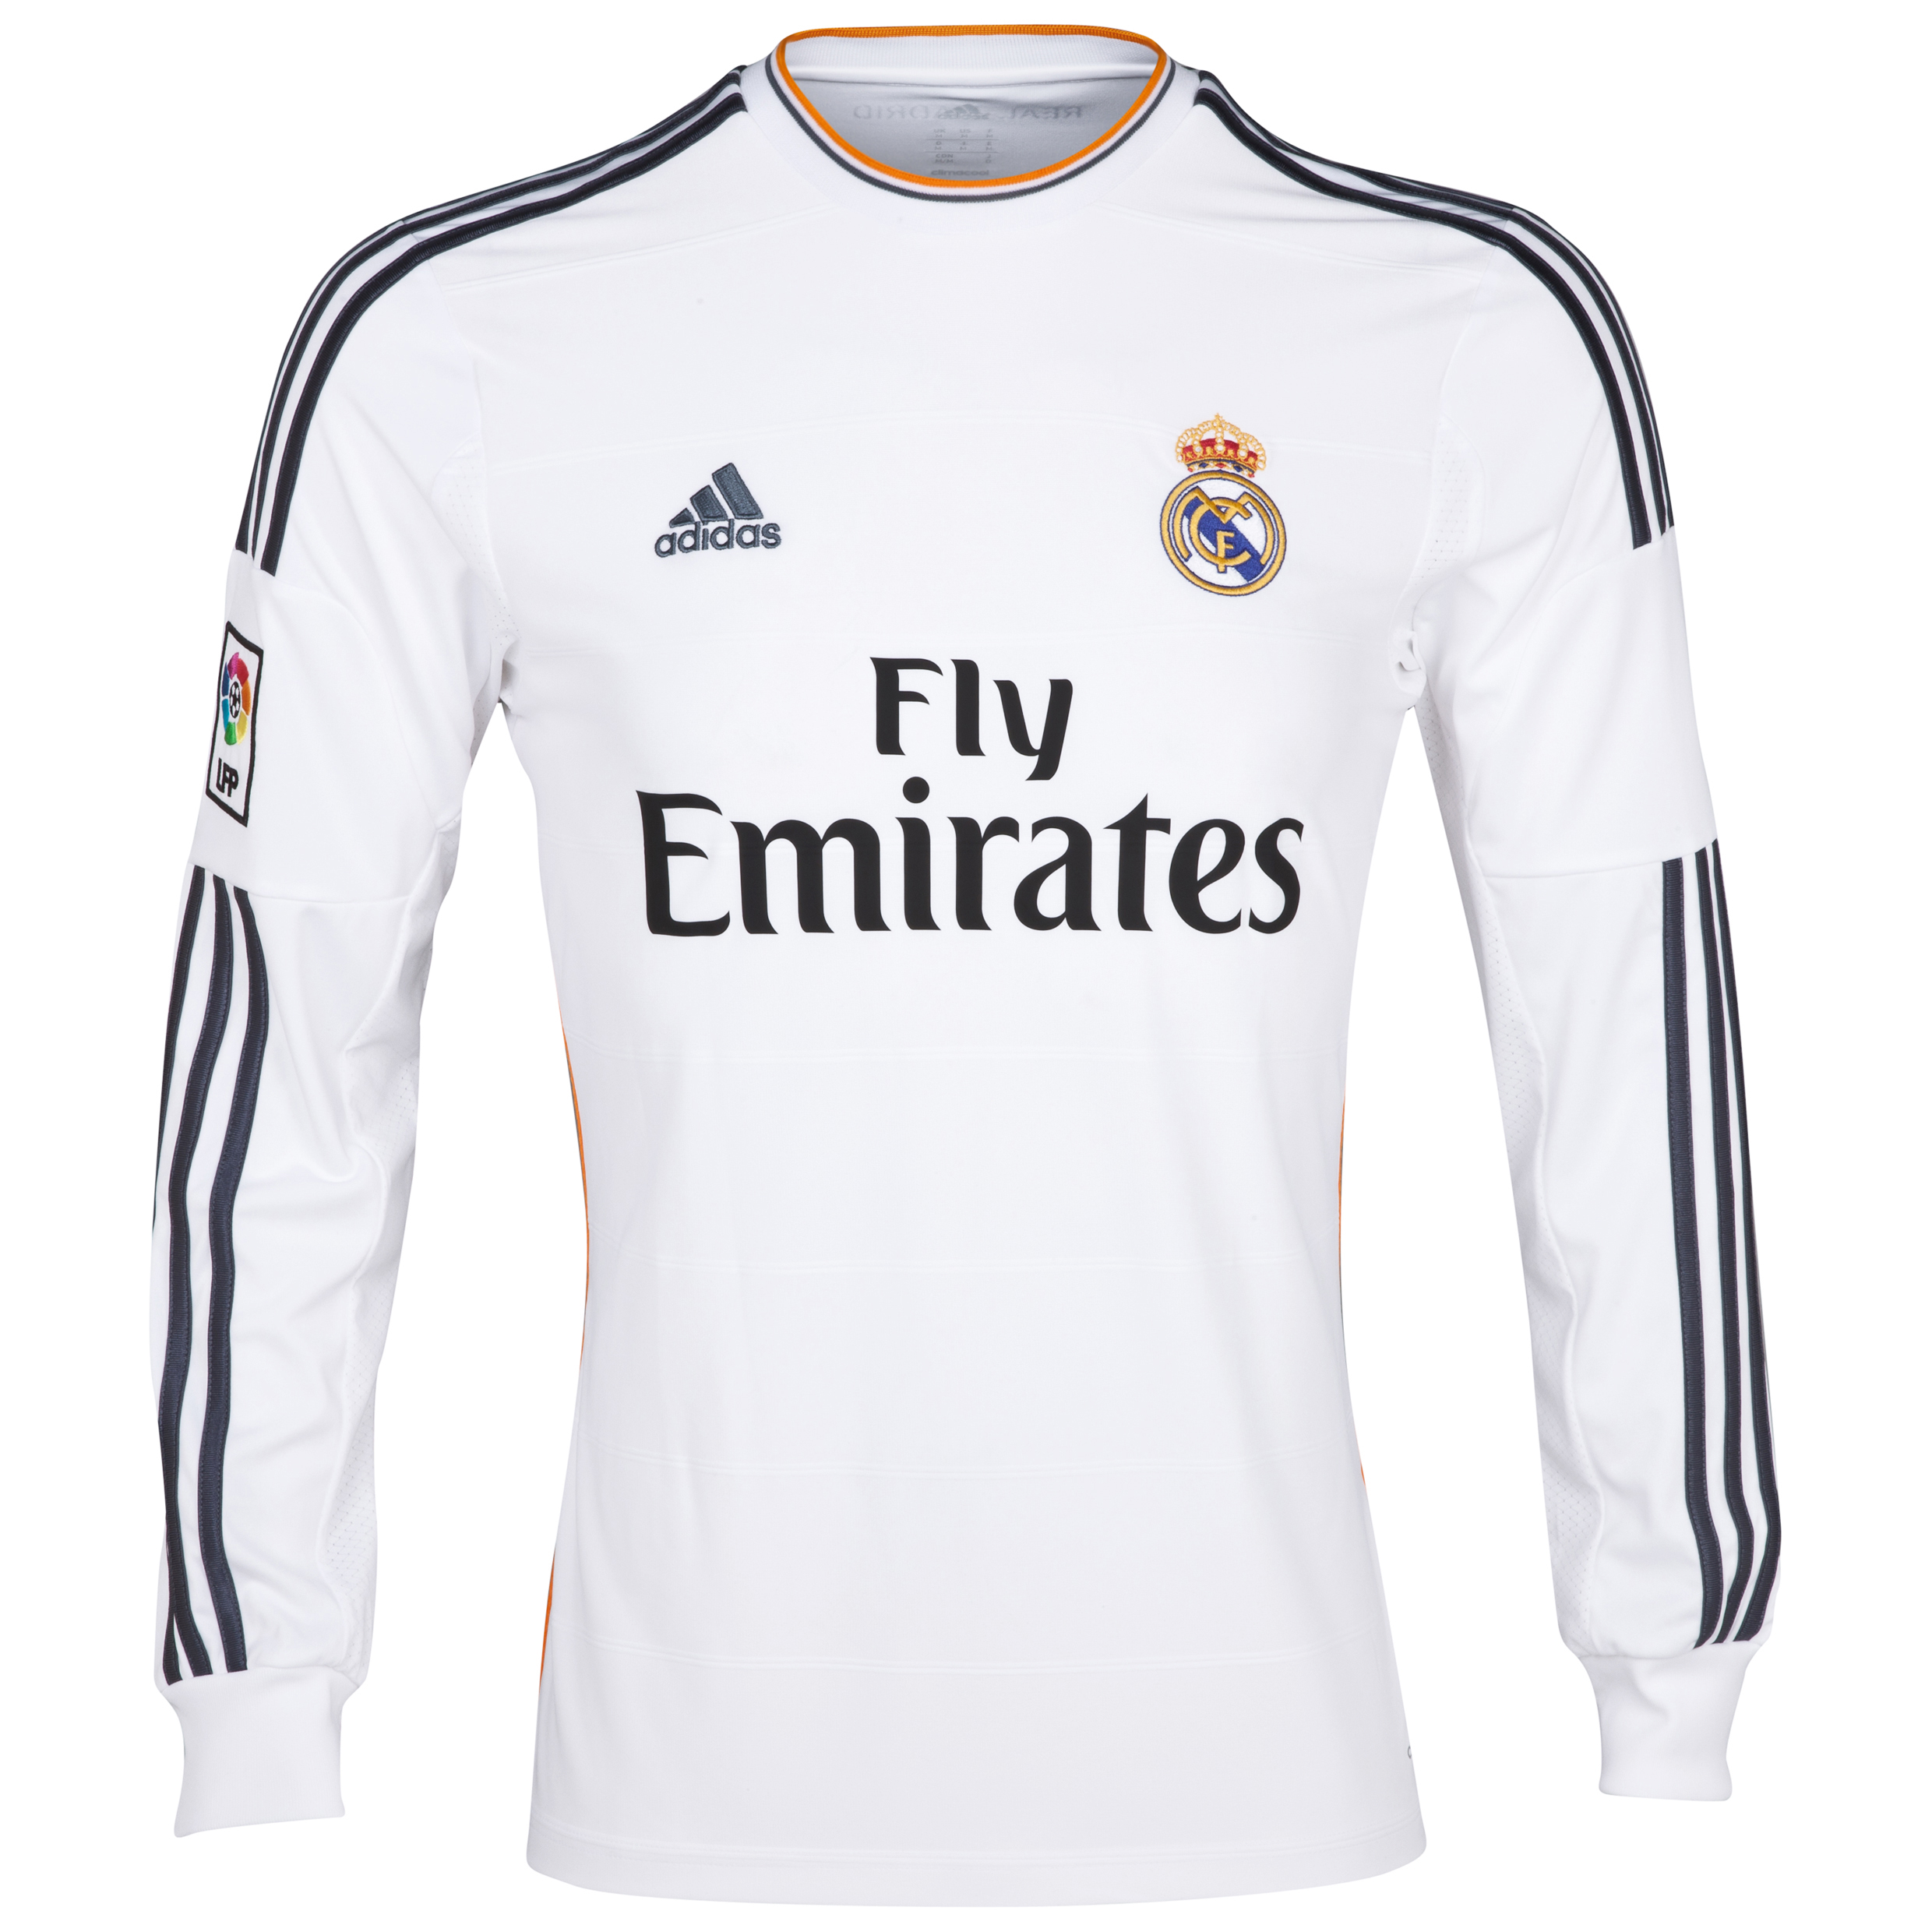 Camiseta 1ª Equipación Real Madrid 2013/14 manga larga